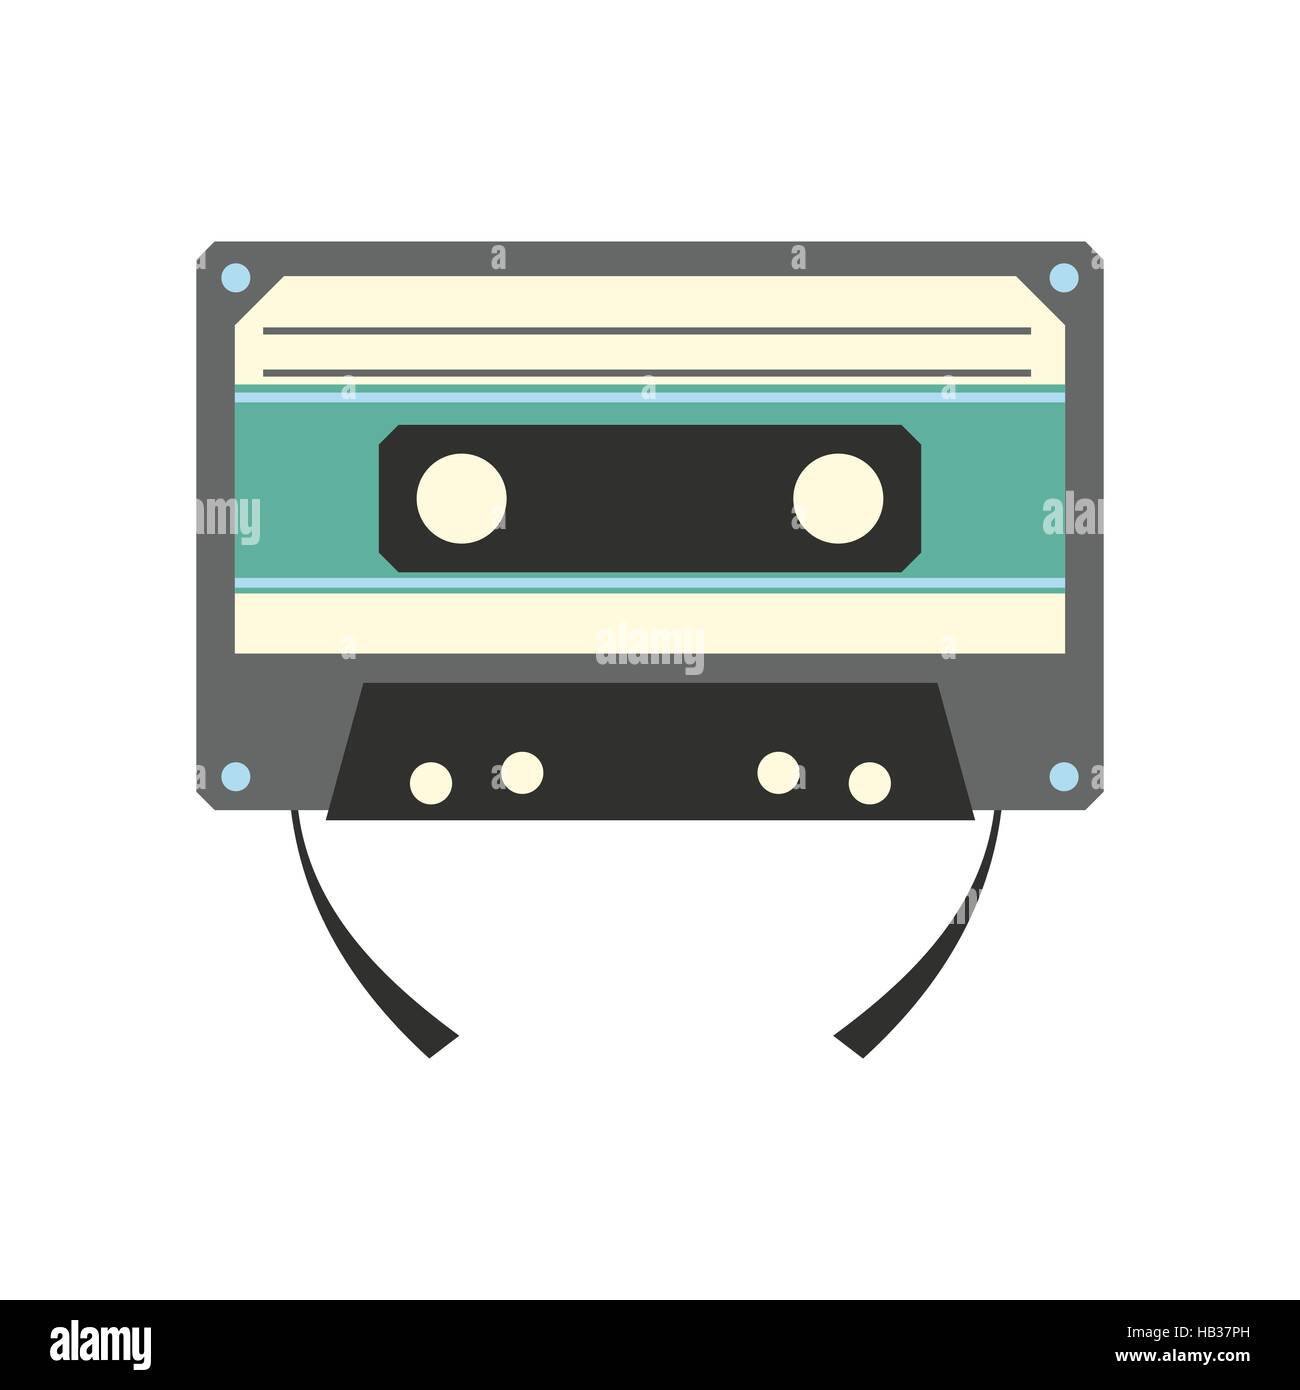 Audio compact cassette flat icon - Stock Image